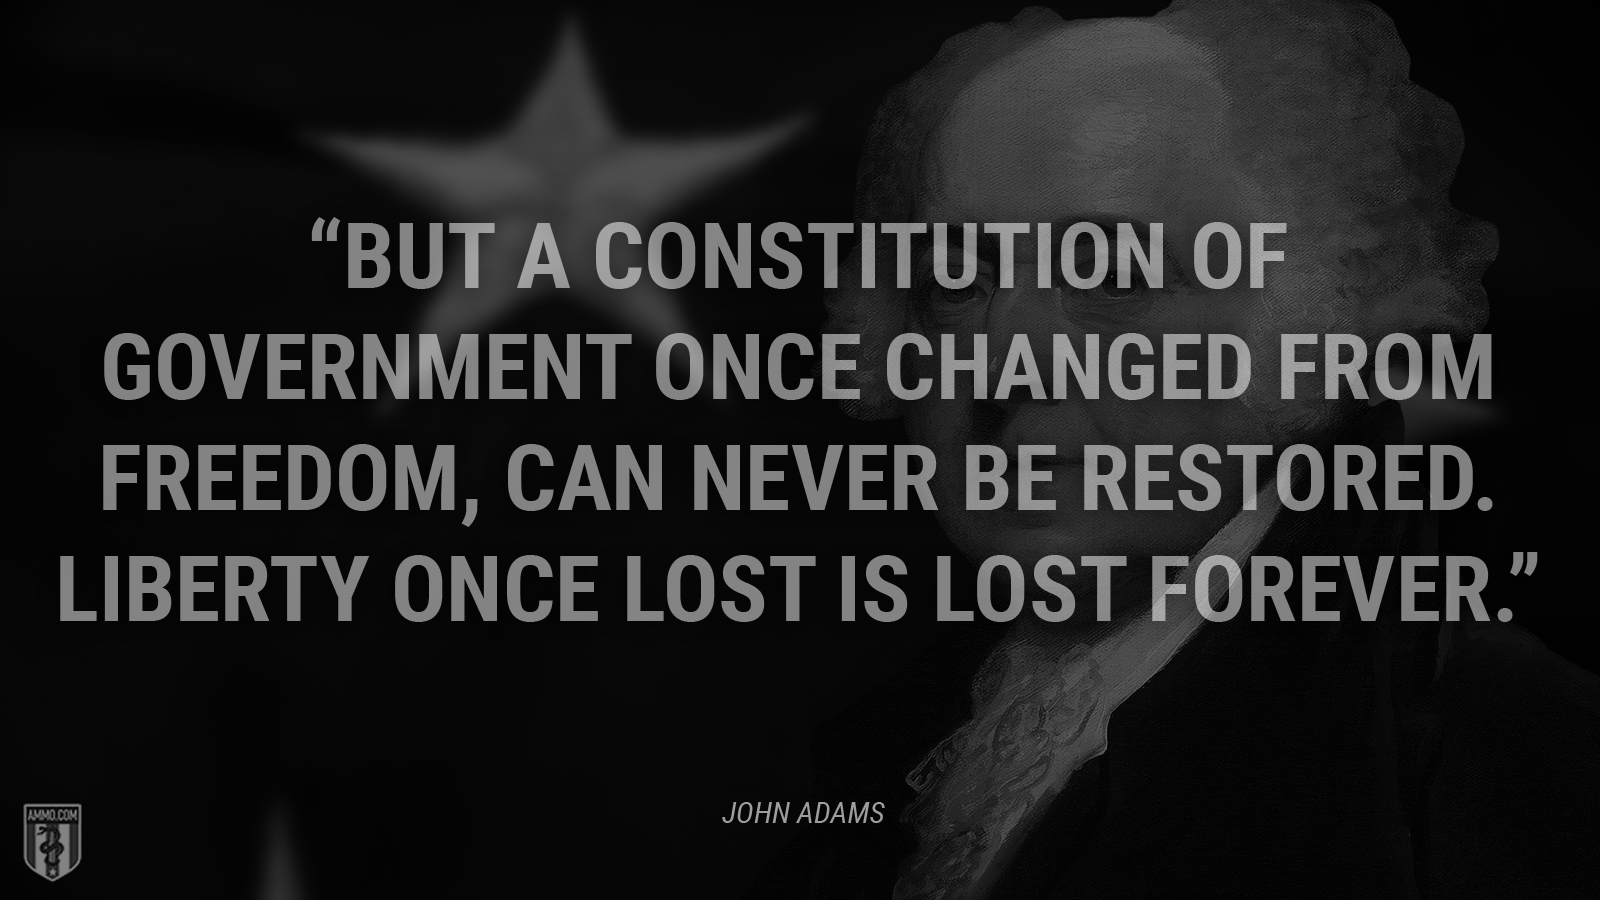 """But a Constitution of Government once changed from Freedom, can never be restored. Liberty once lost is lost forever."" - John Adams"